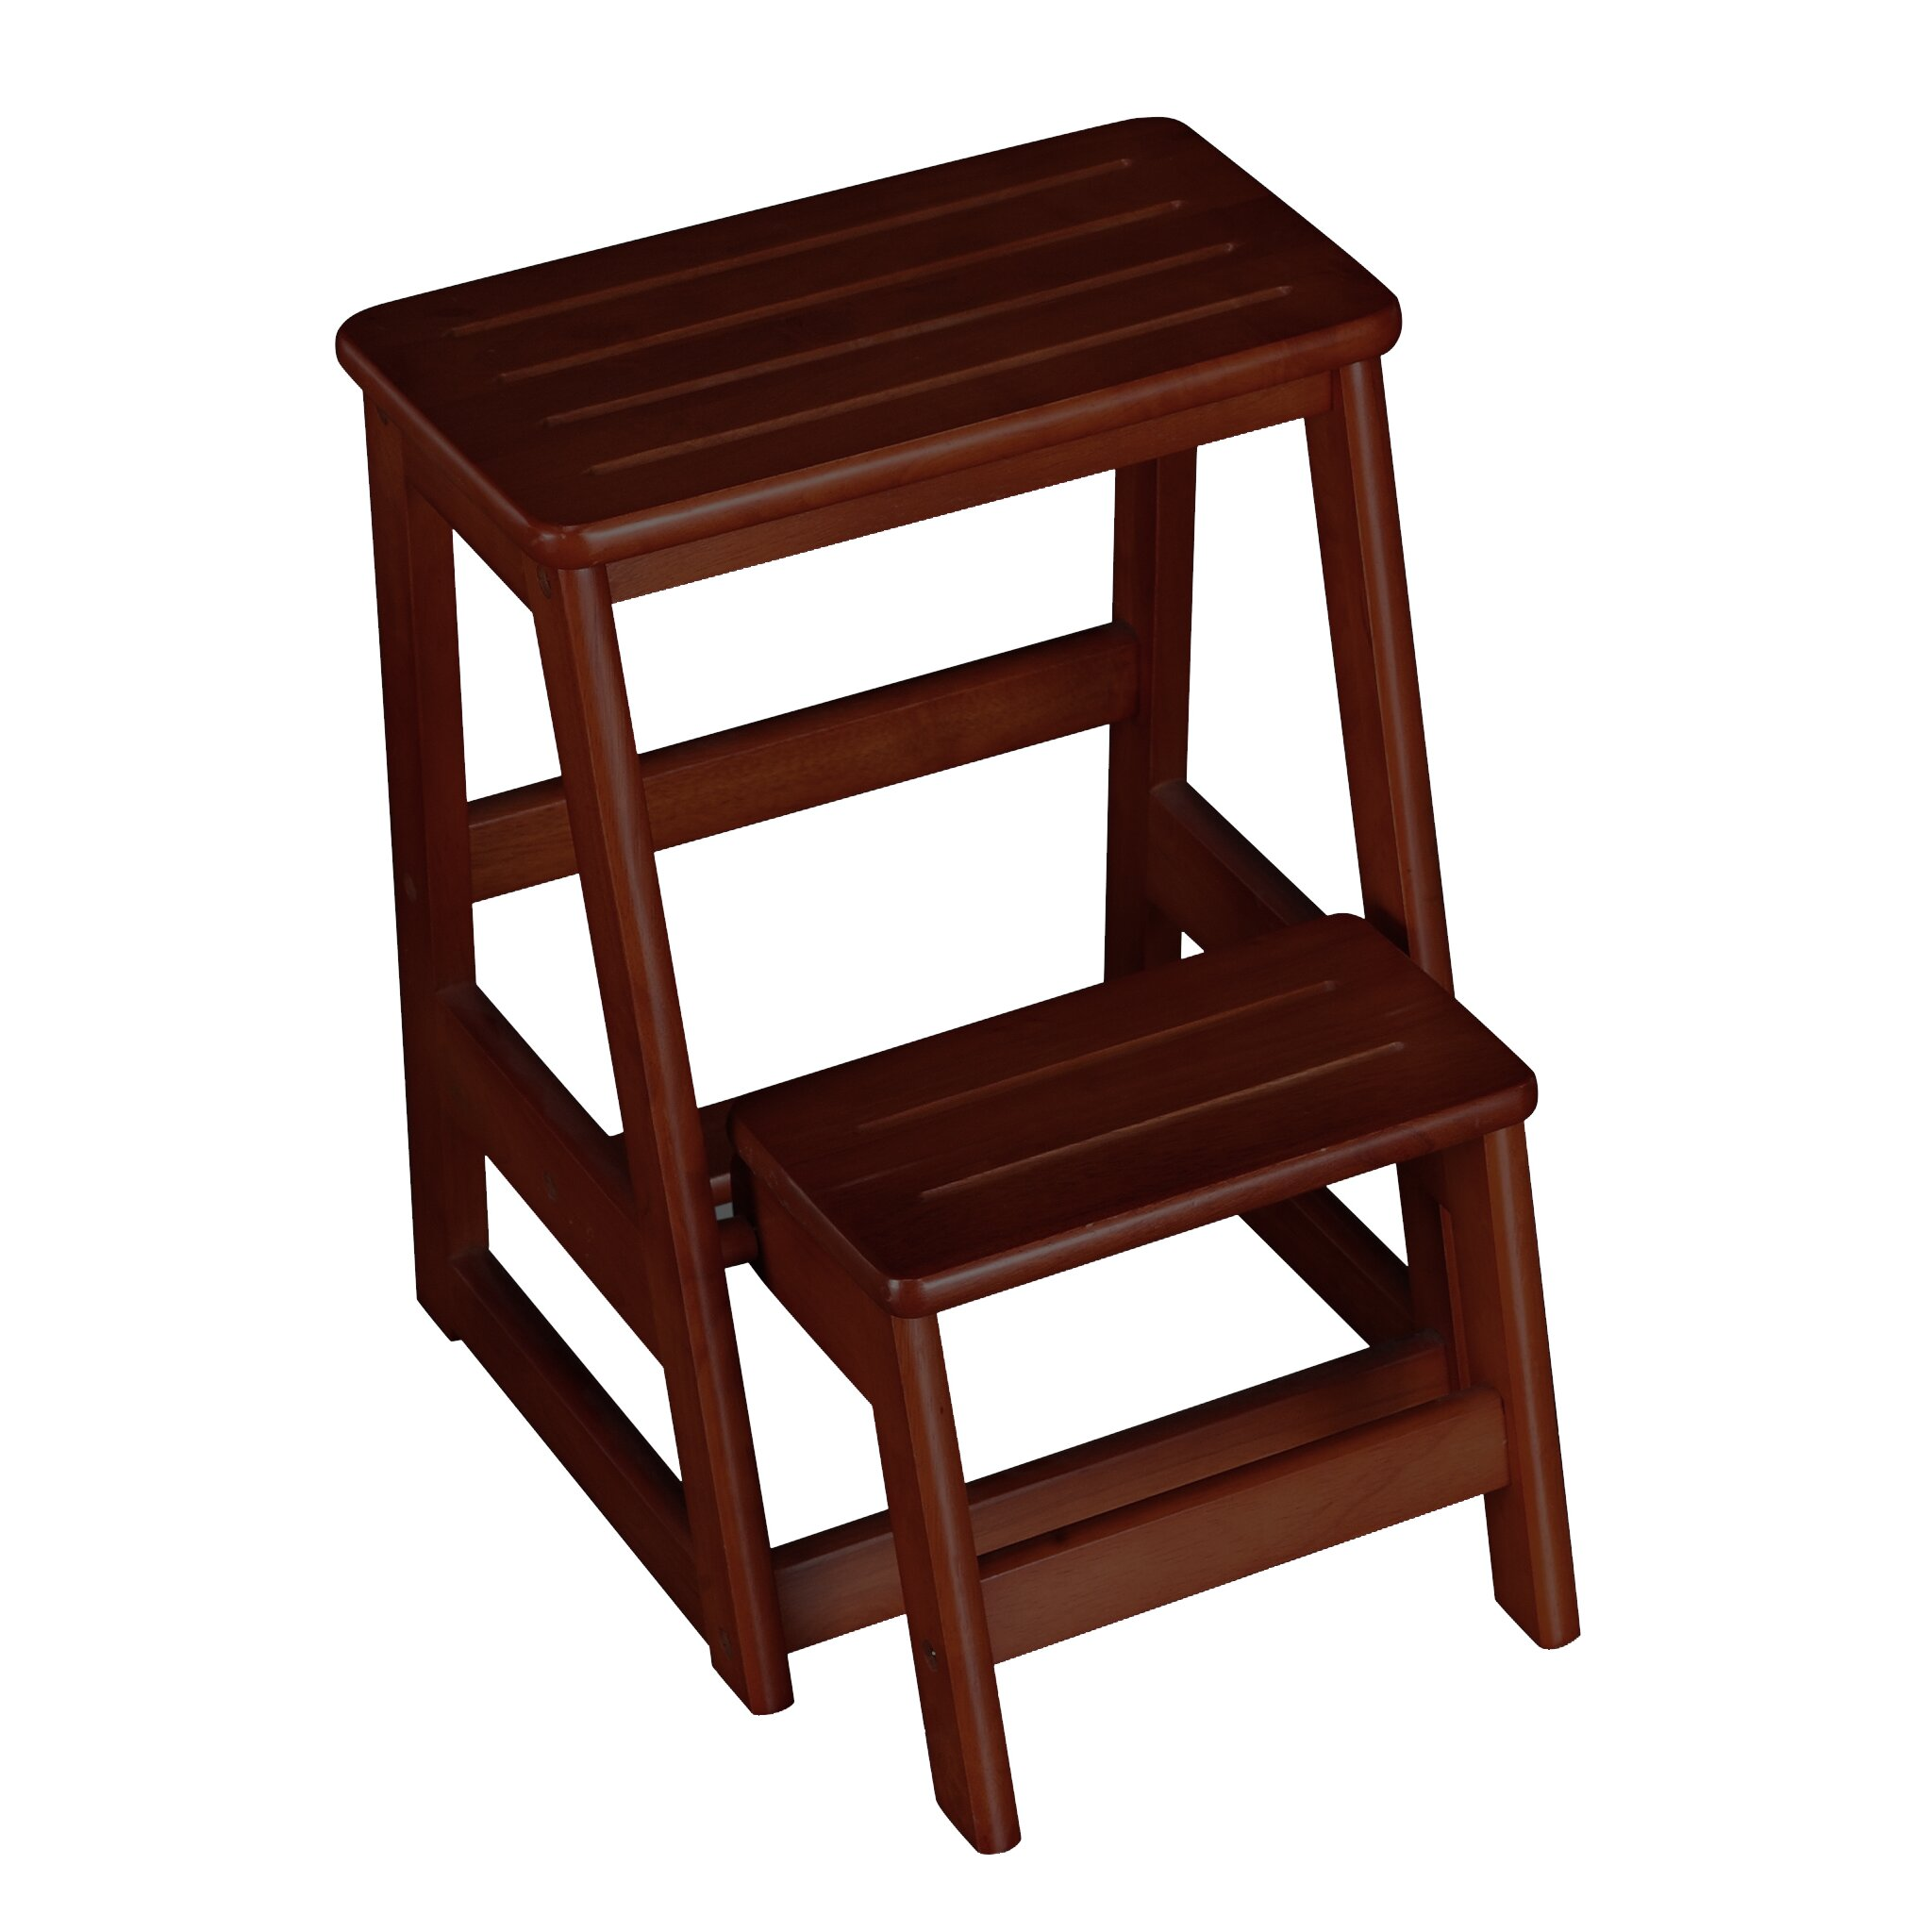 Decorative Step Stools Kitchen Ladders Step Stools Youll Love Wayfair